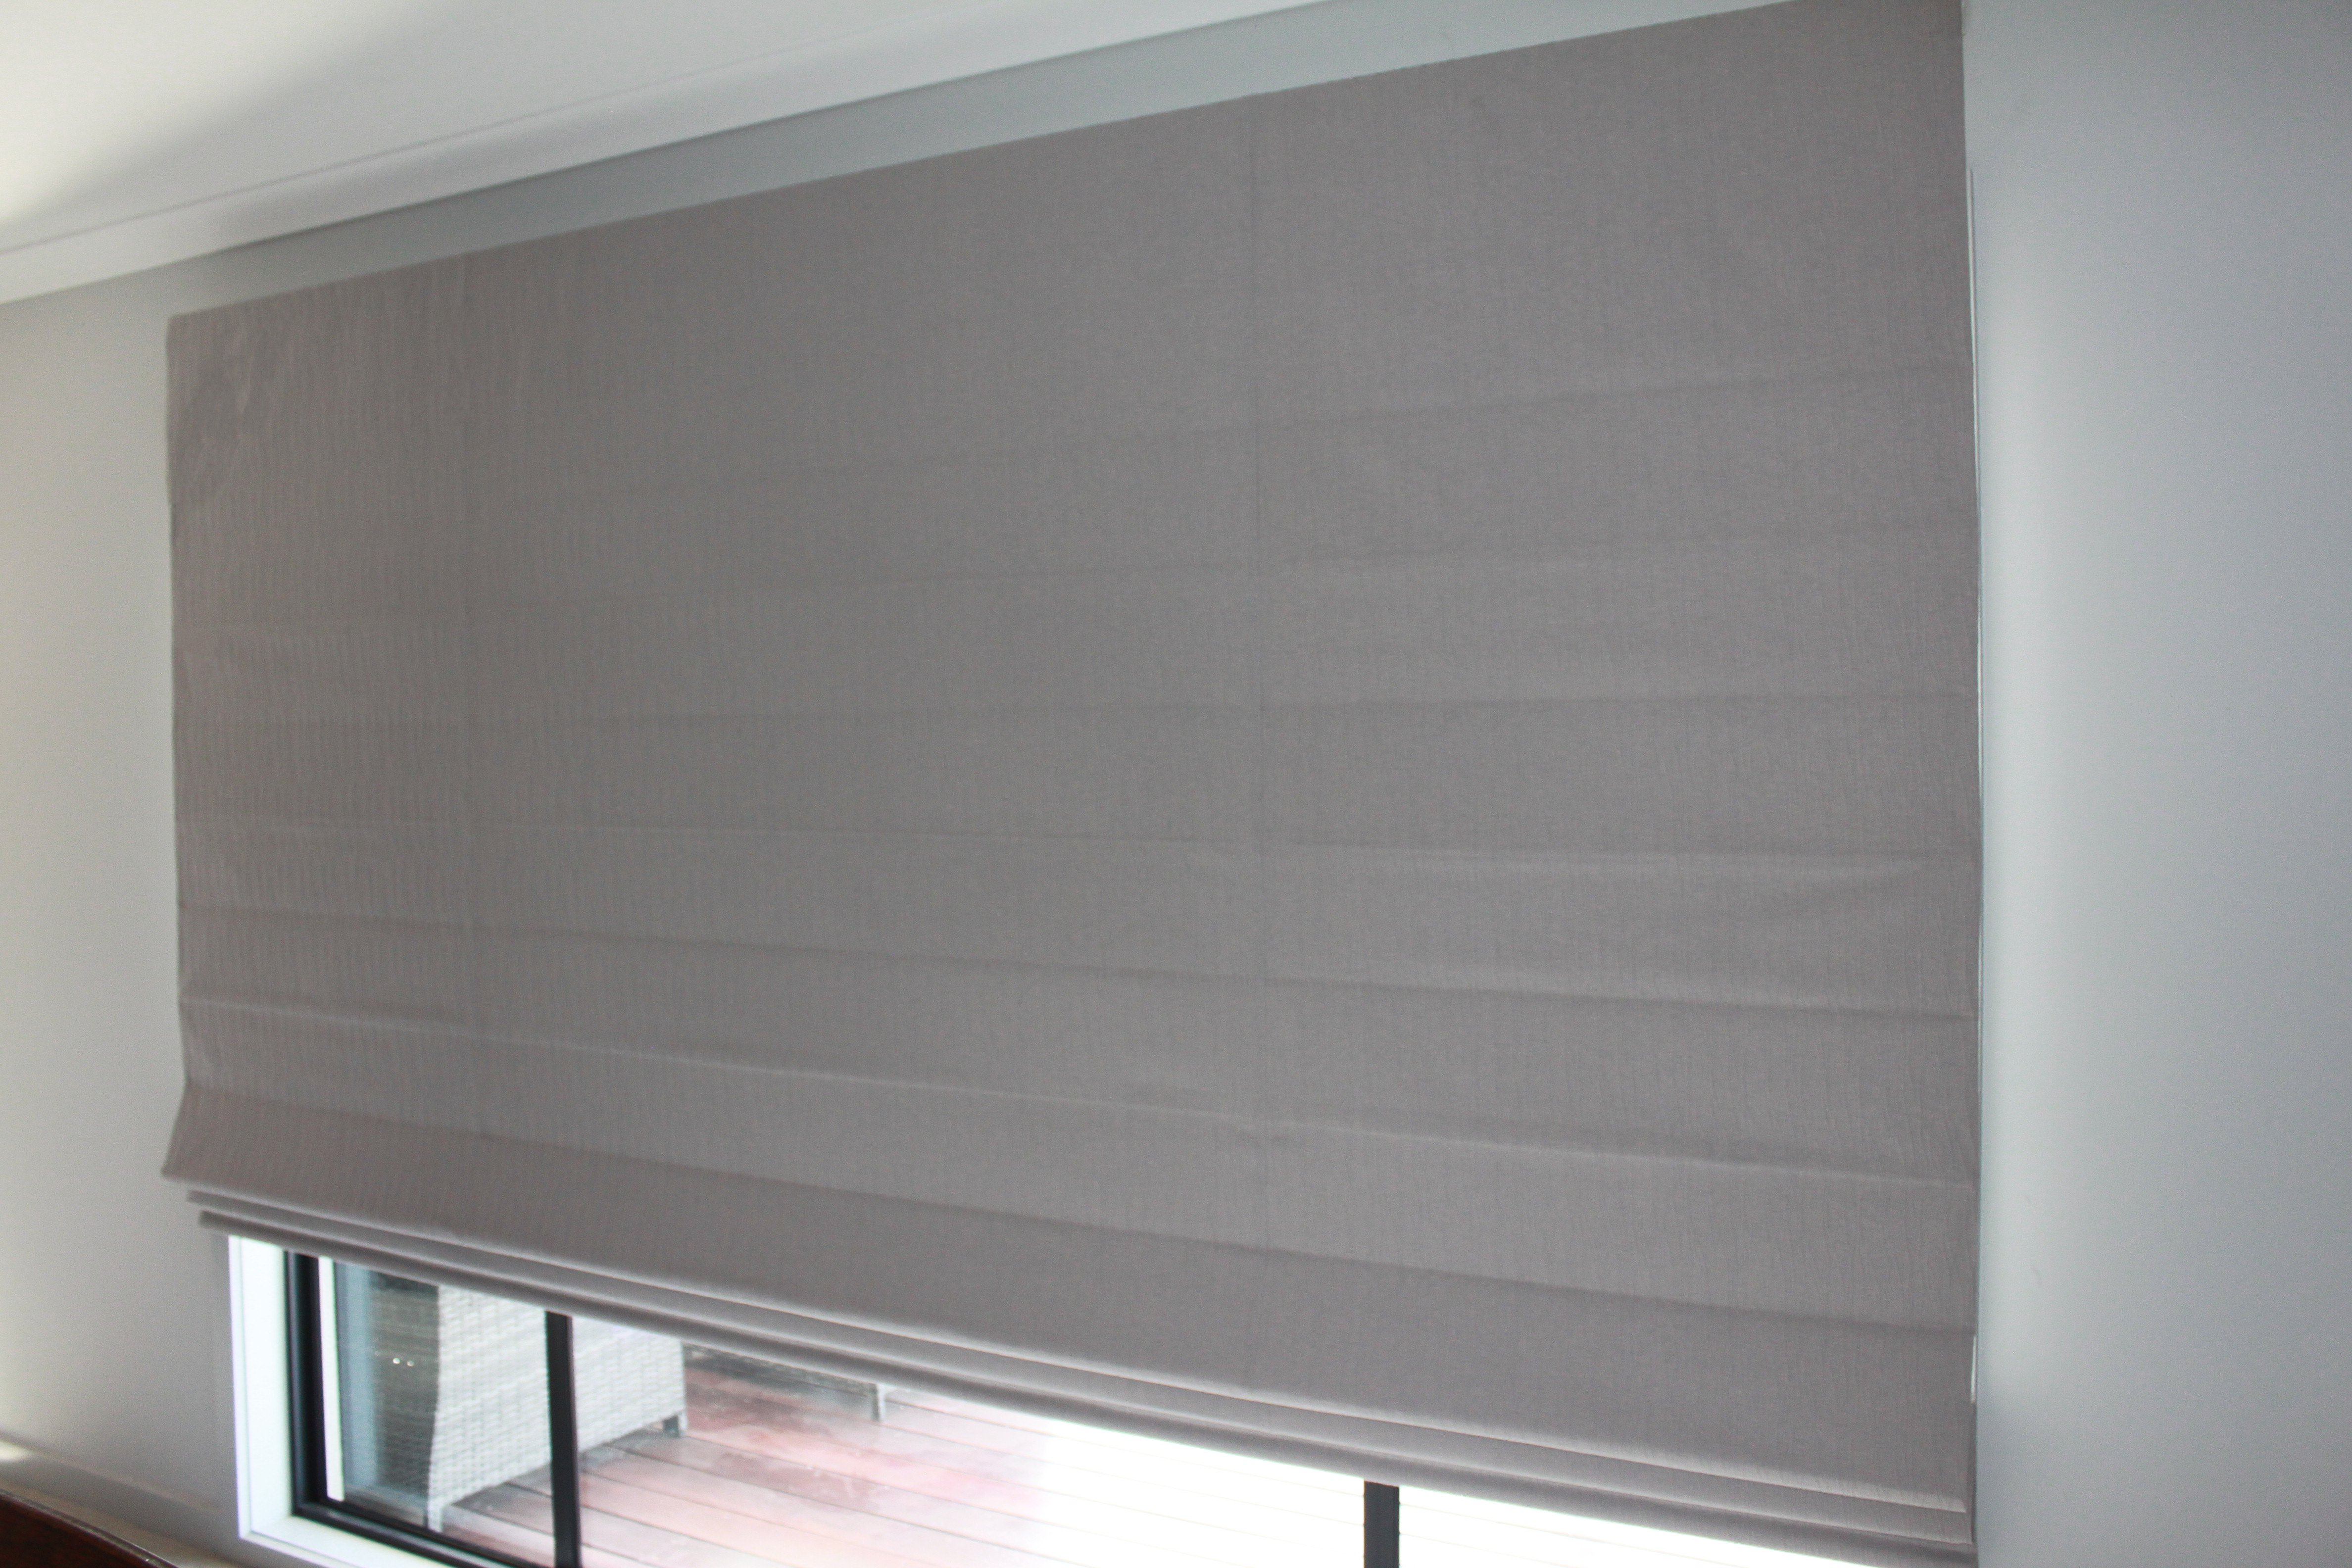 chain tracks to kit blinds white kits headrail operated blind deluxe roman made measure